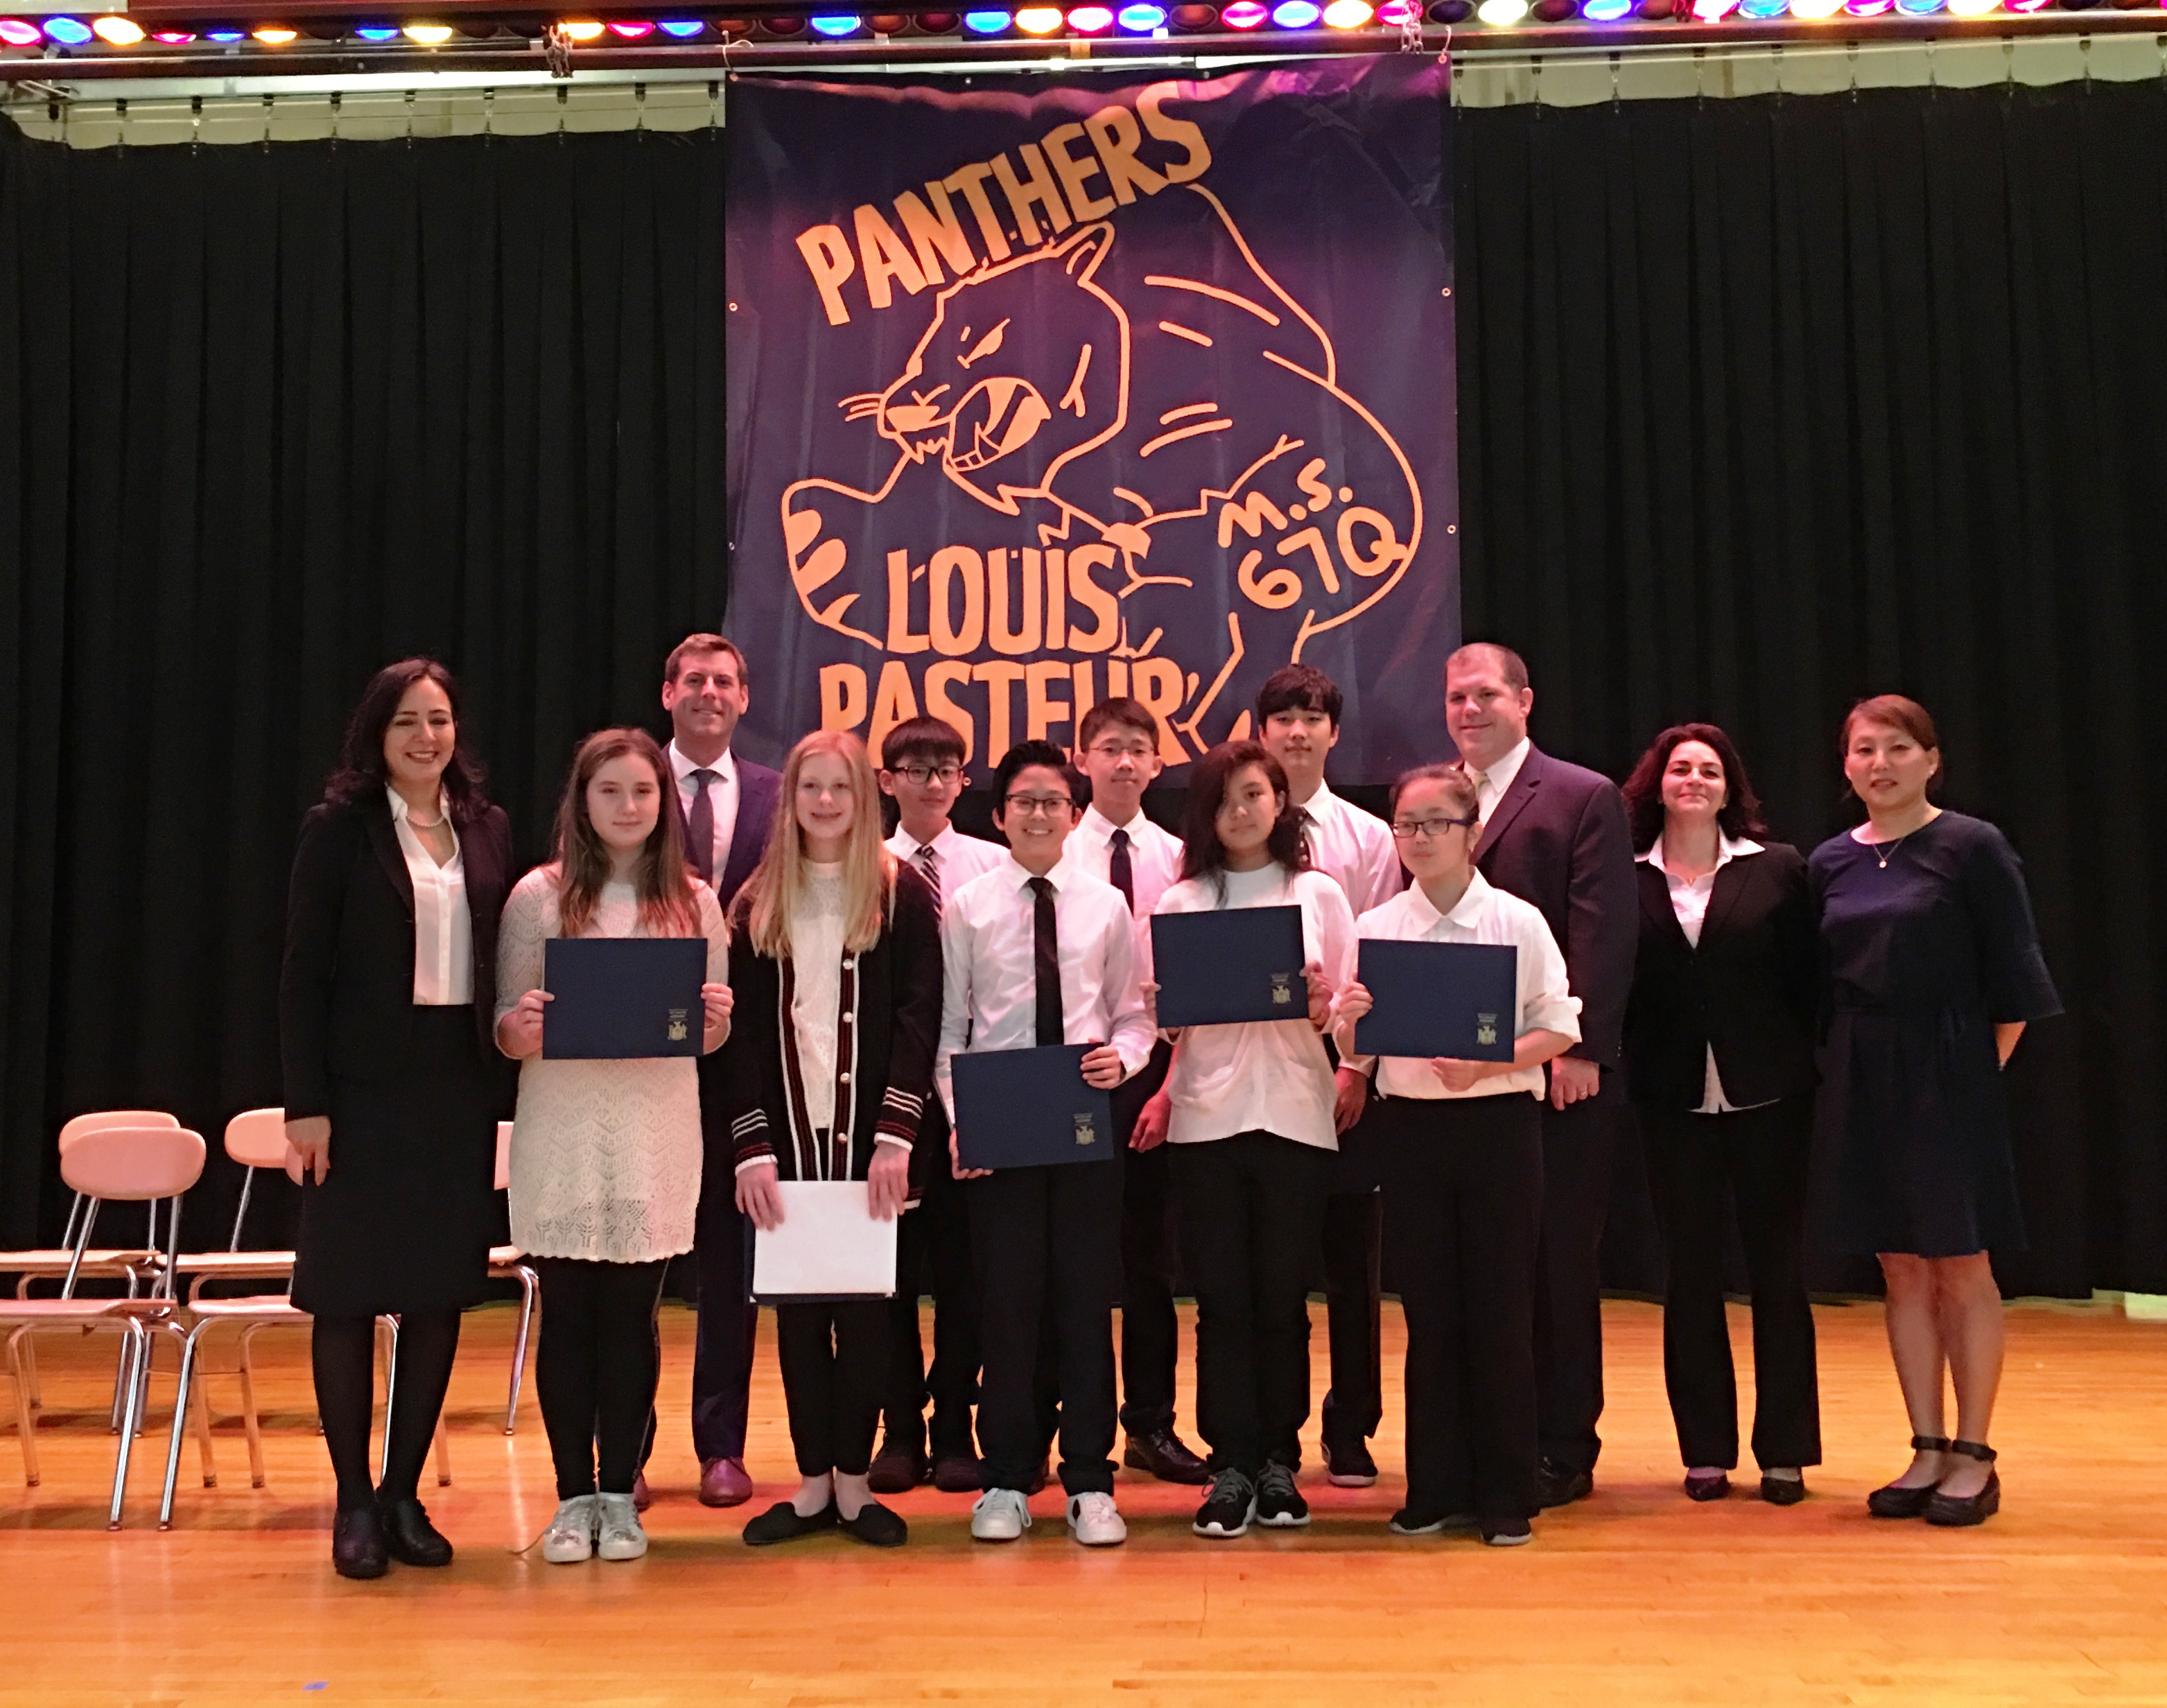 On November 2, 2018, Assemblyman Braunstein installed the 2018-2019 Student Organization at Louis Pasteur Middle School 67.